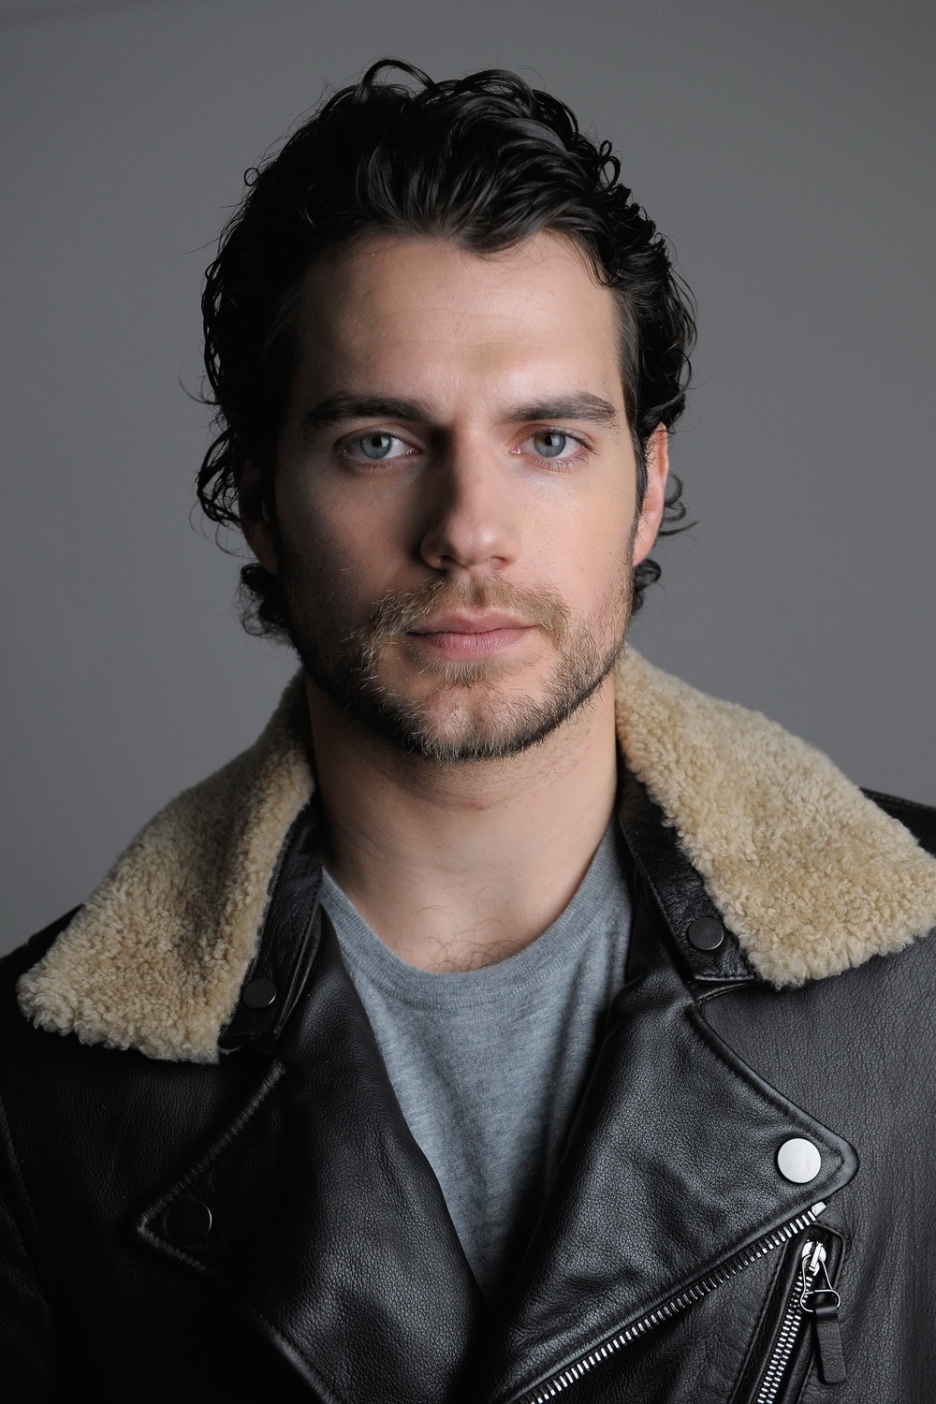 Henry Cavill Henry Cavill Photo 34039366 Fanpop